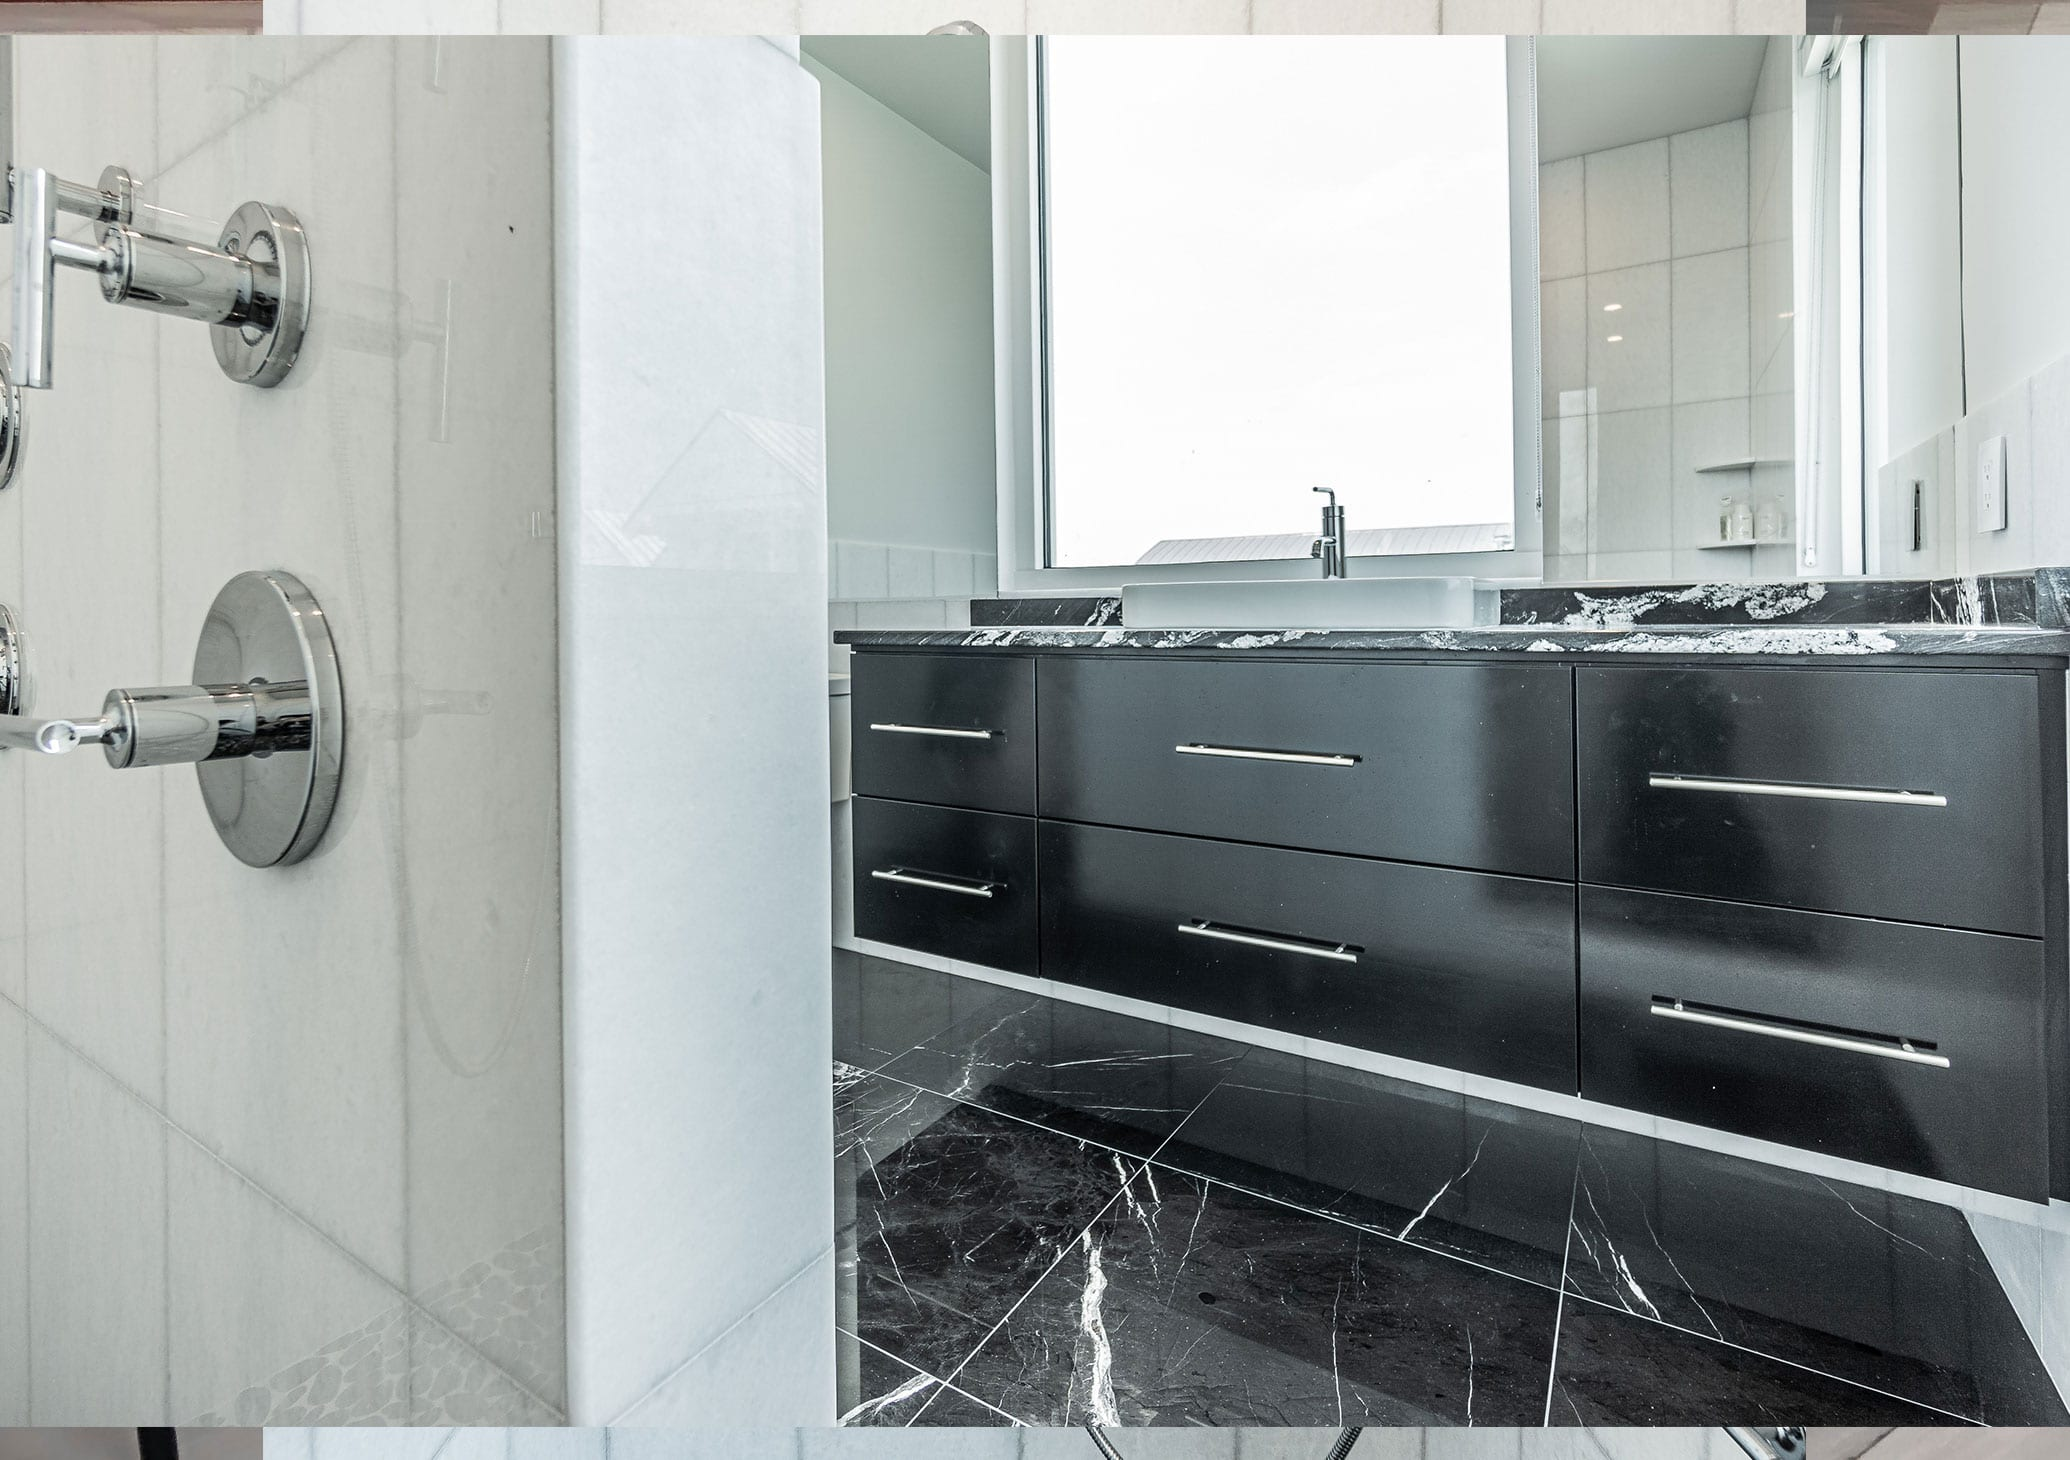 Stoneline-Group-Diamond-White-Marble-Florida-Marble-Collection-Marble-Tile-Hotel-room-deluxe-room-Bathroom-Design-2